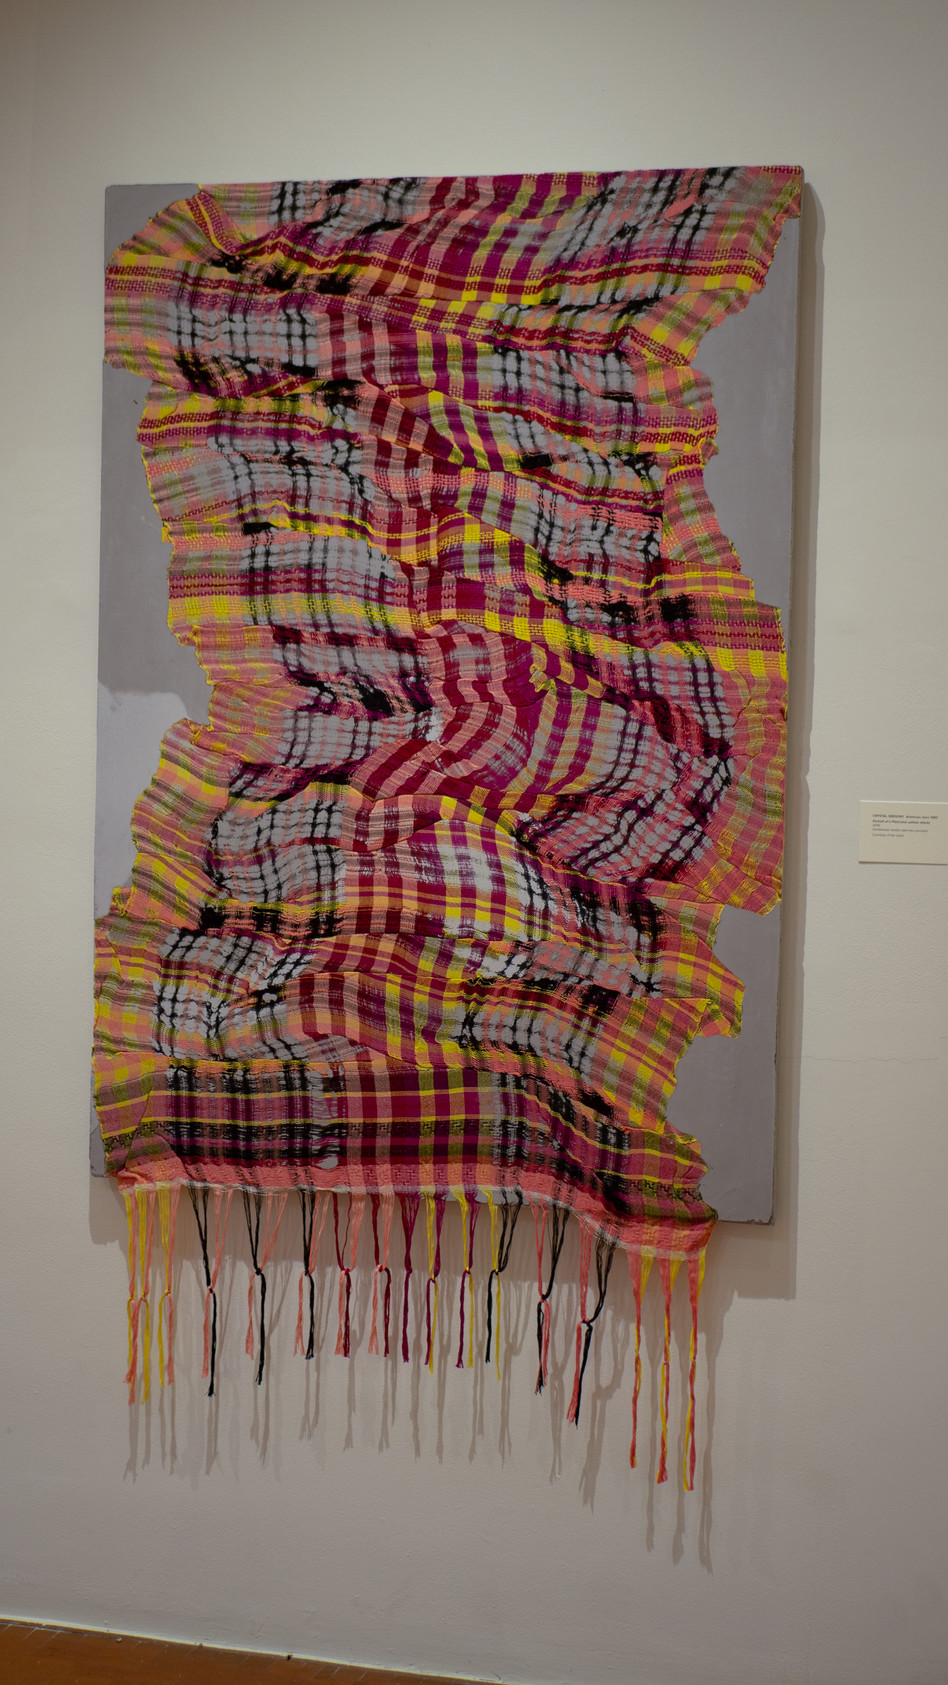 Portrait of a Plaid (red-yellow-black)